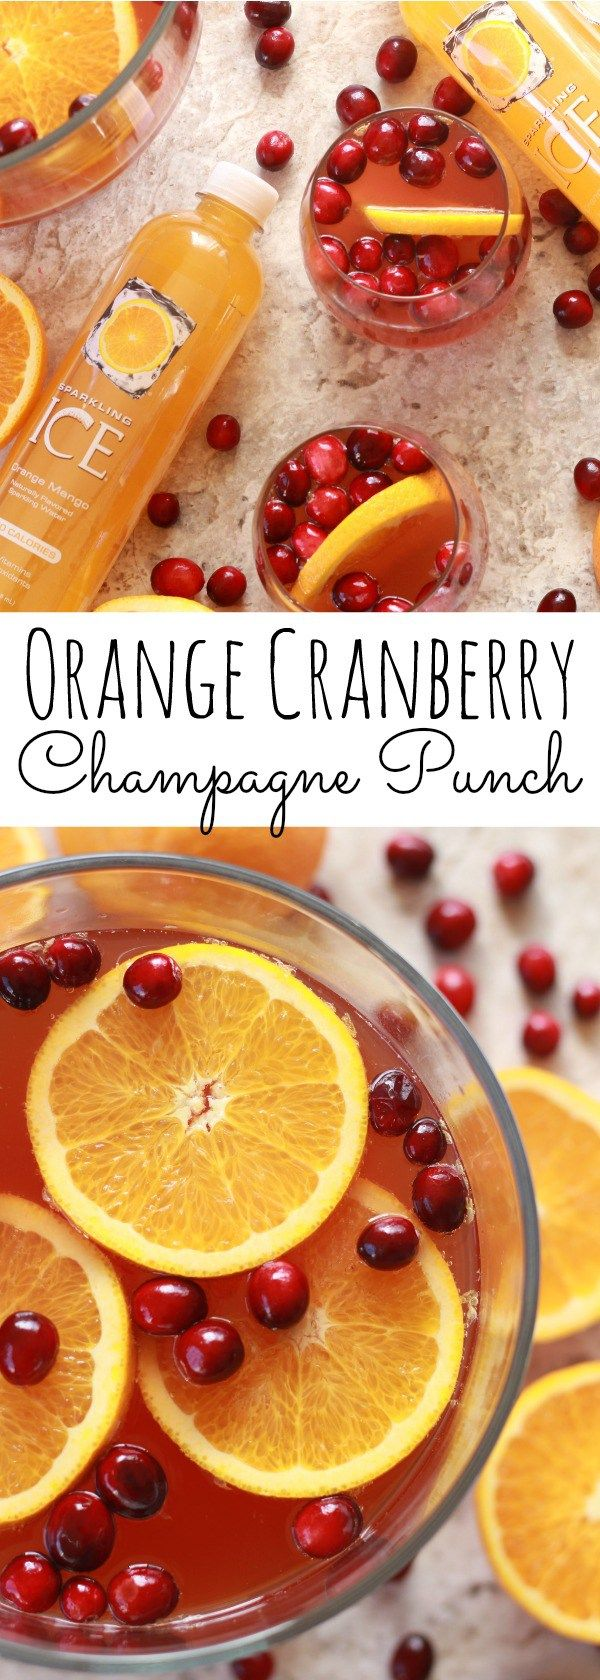 This simple Orange Cranberry Champagne punch will be the perfect addition to any holiday party!